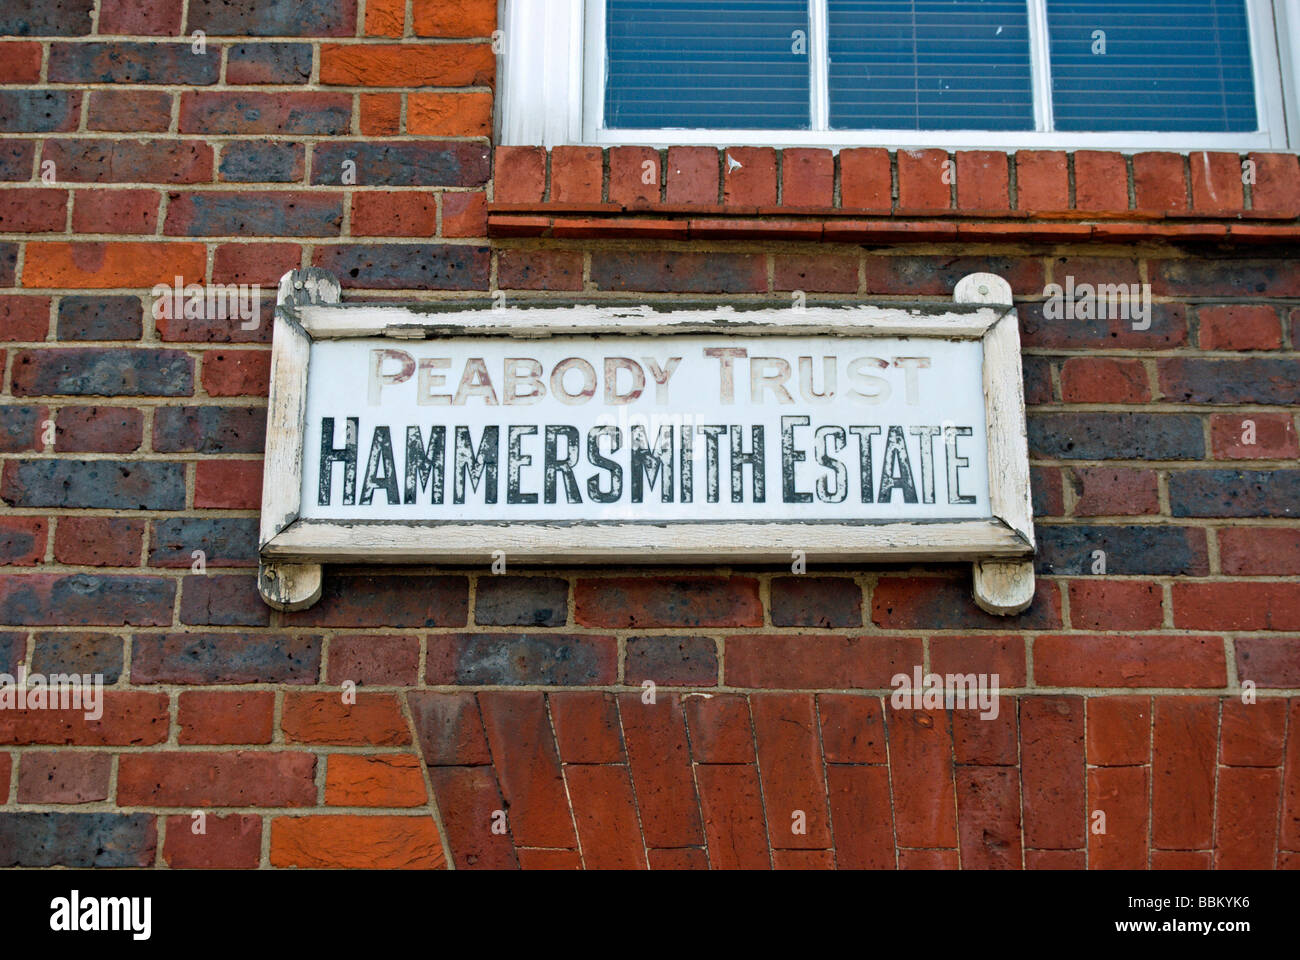 wall sign for peabody trust hammersmith estate, in hammersmith, west london, england - Stock Image